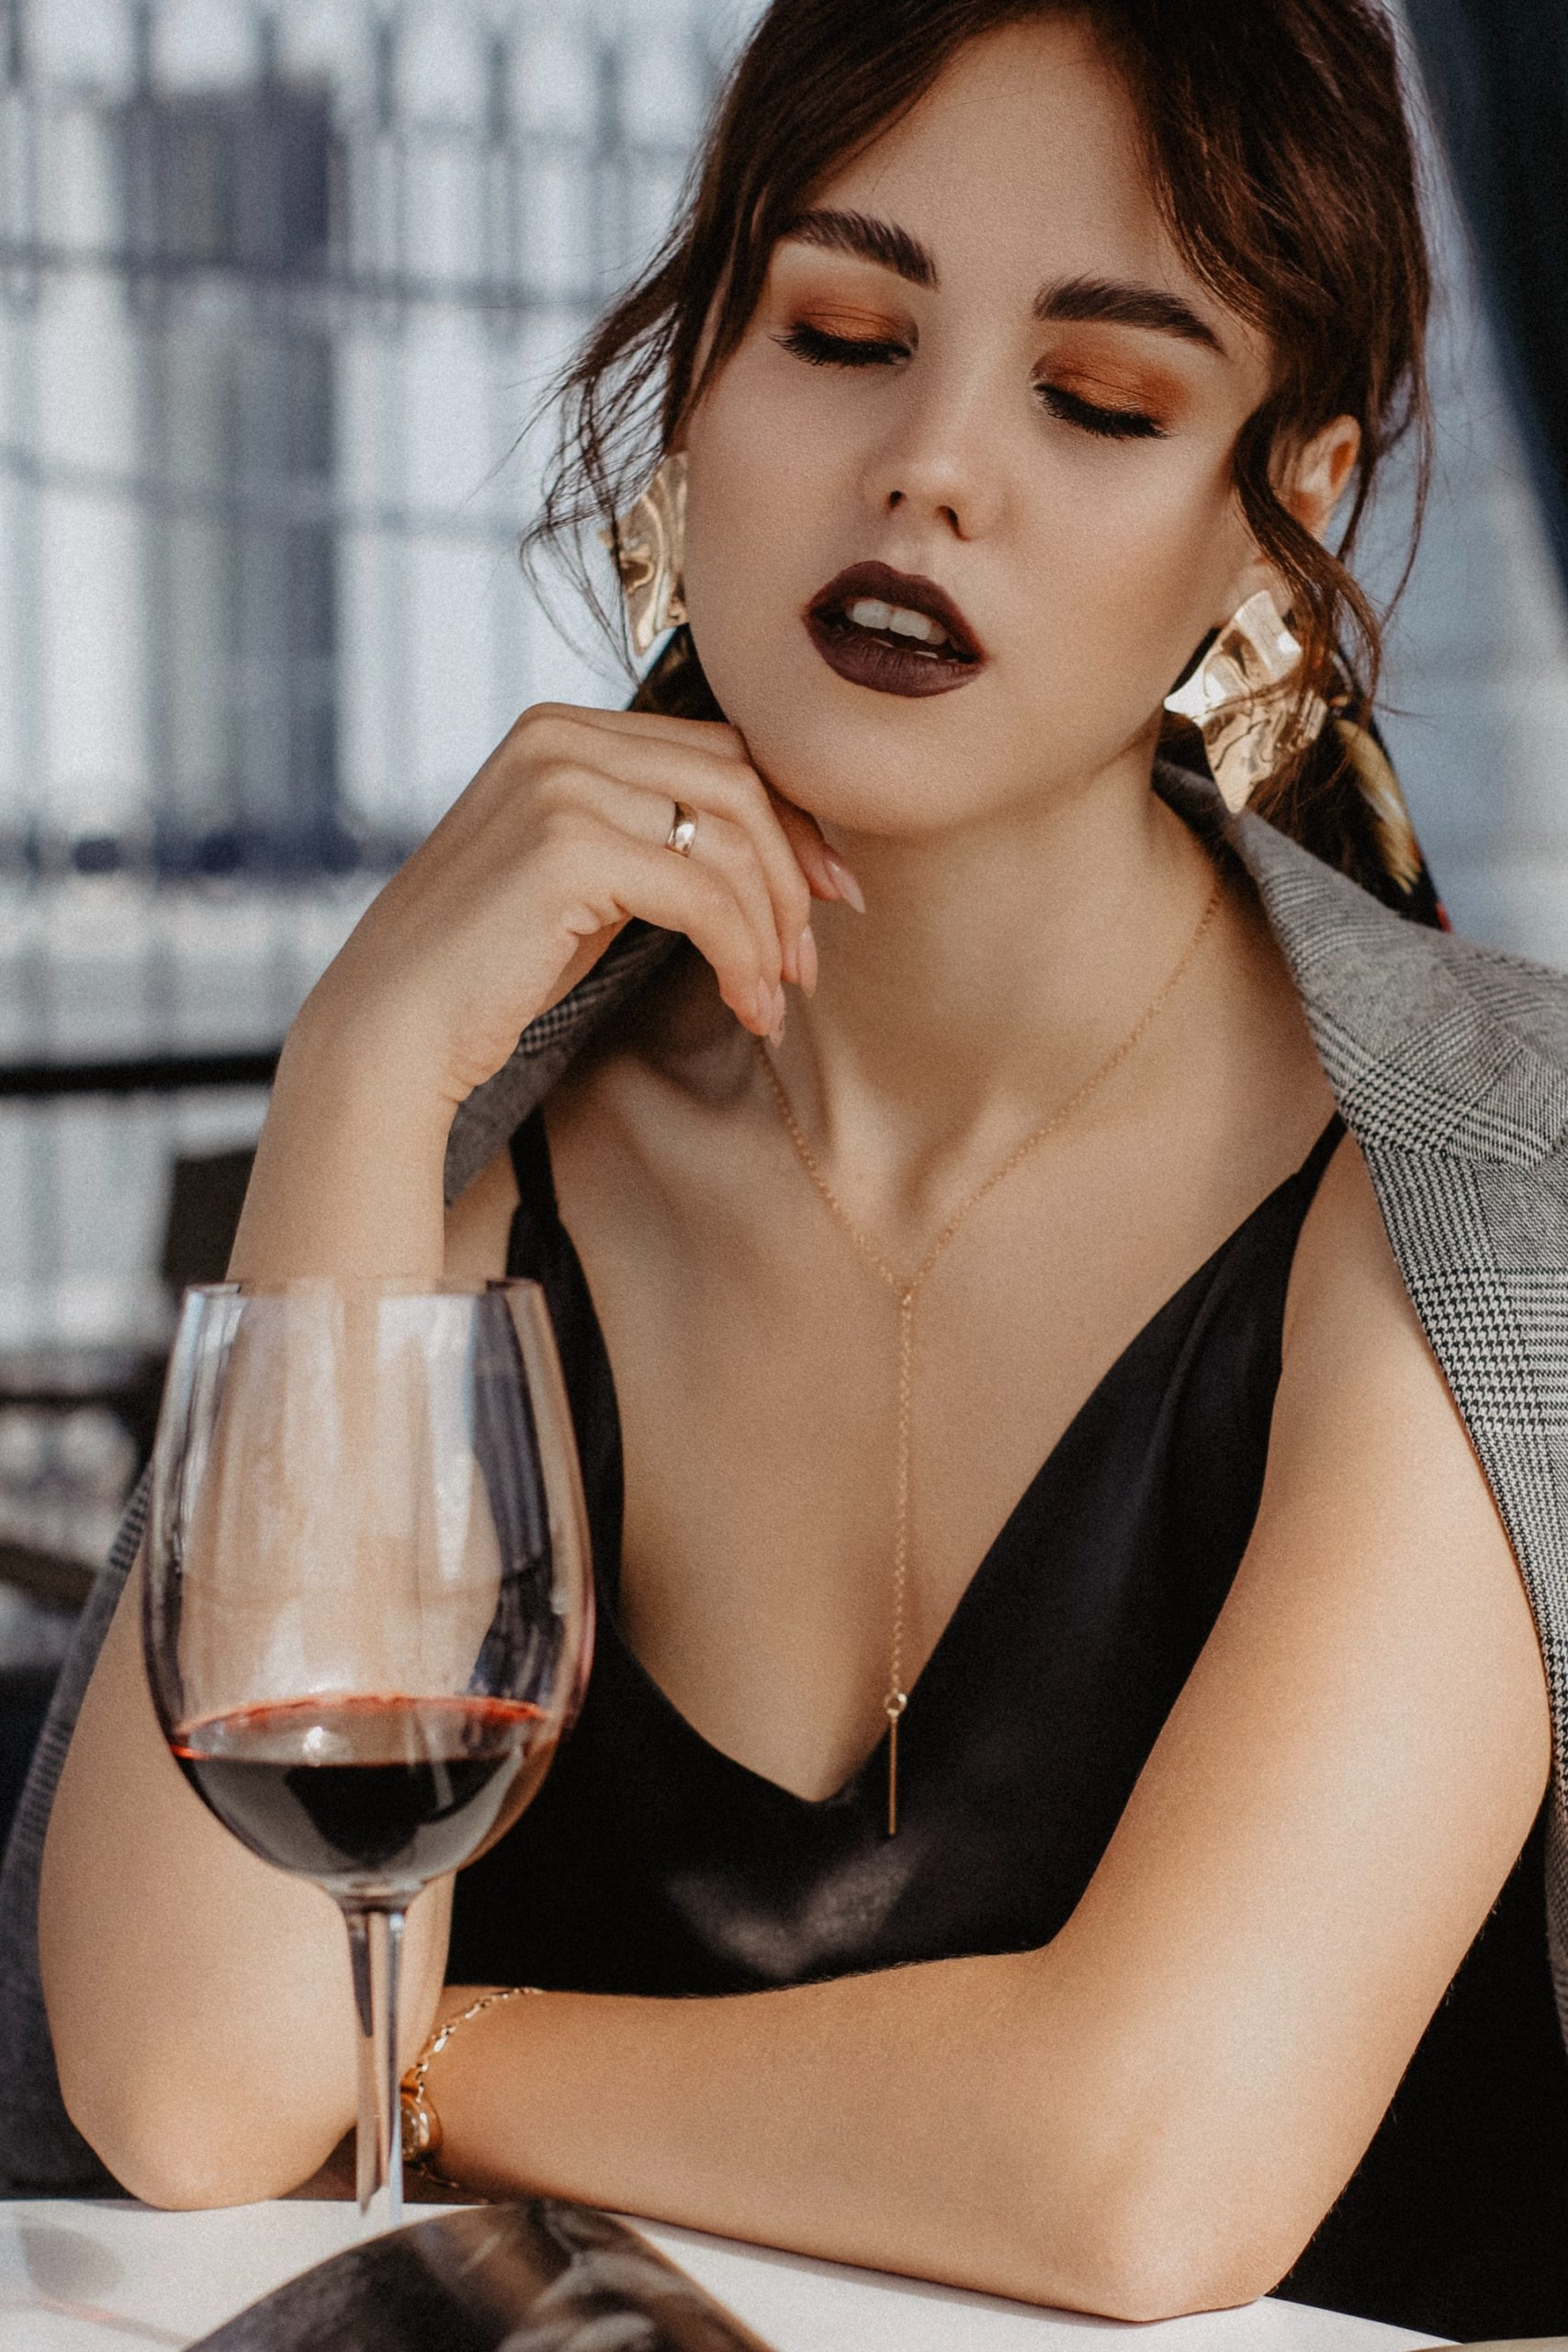 slurring young woman chilling in front of a glass of red wine